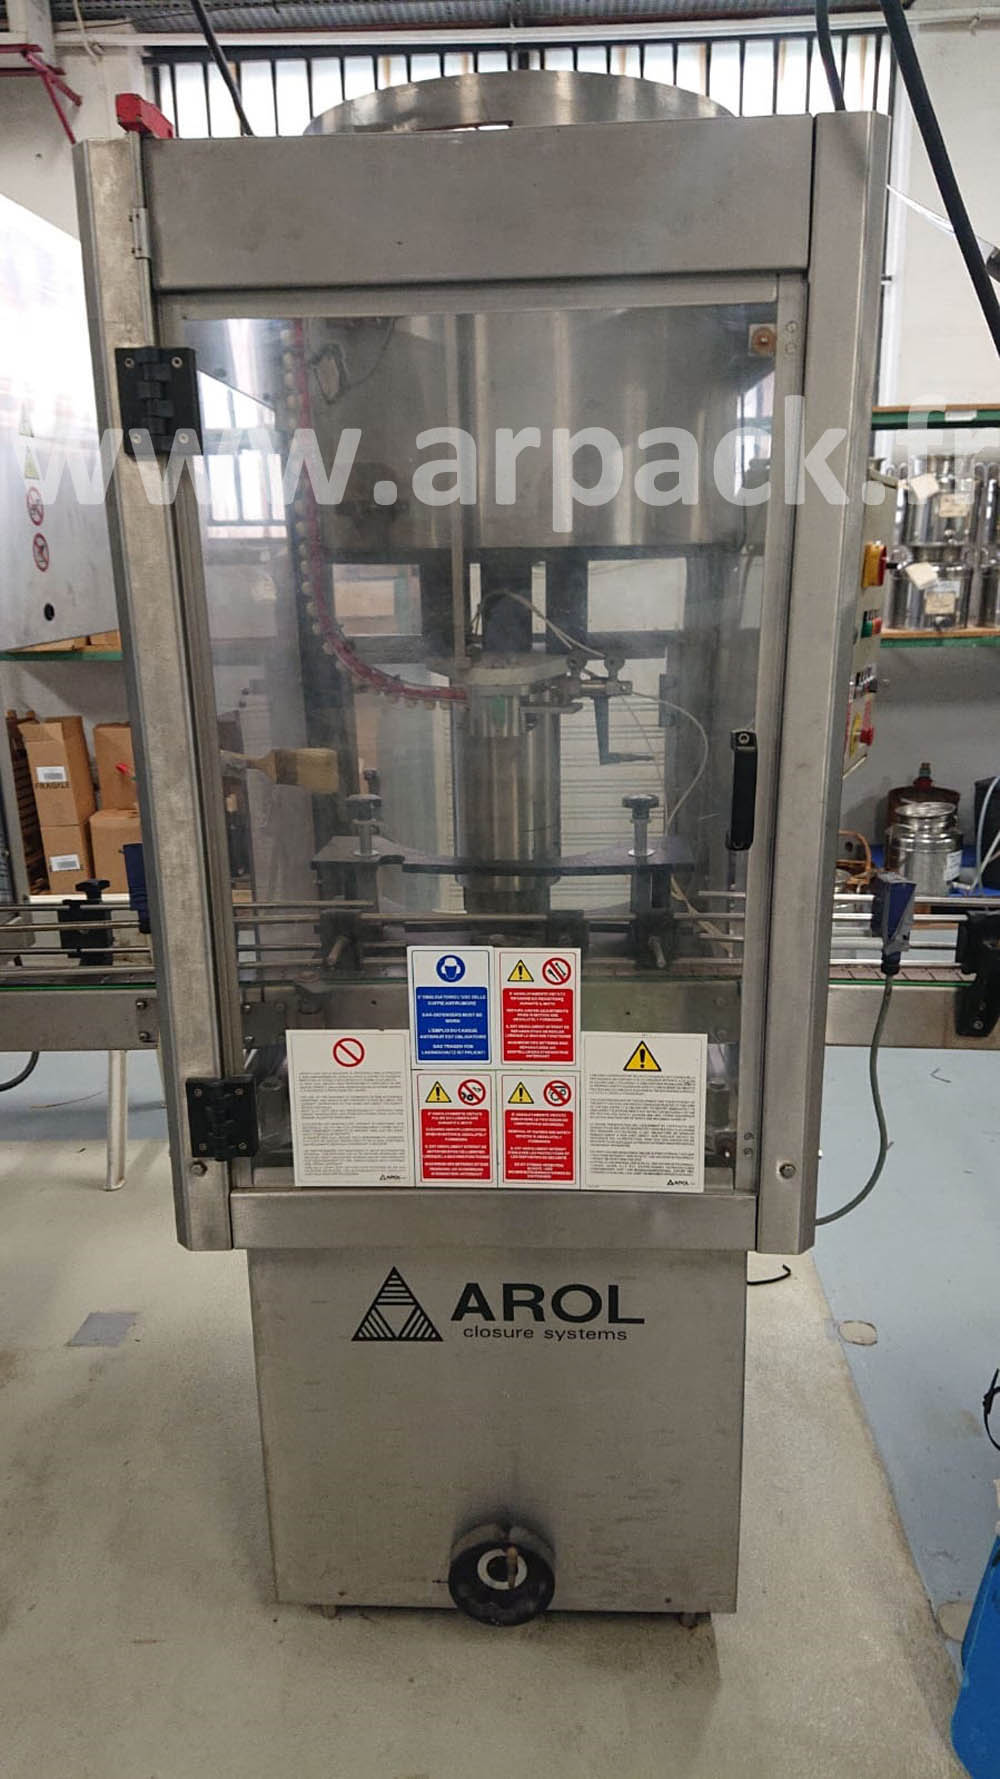 T-cap capping machine Arol